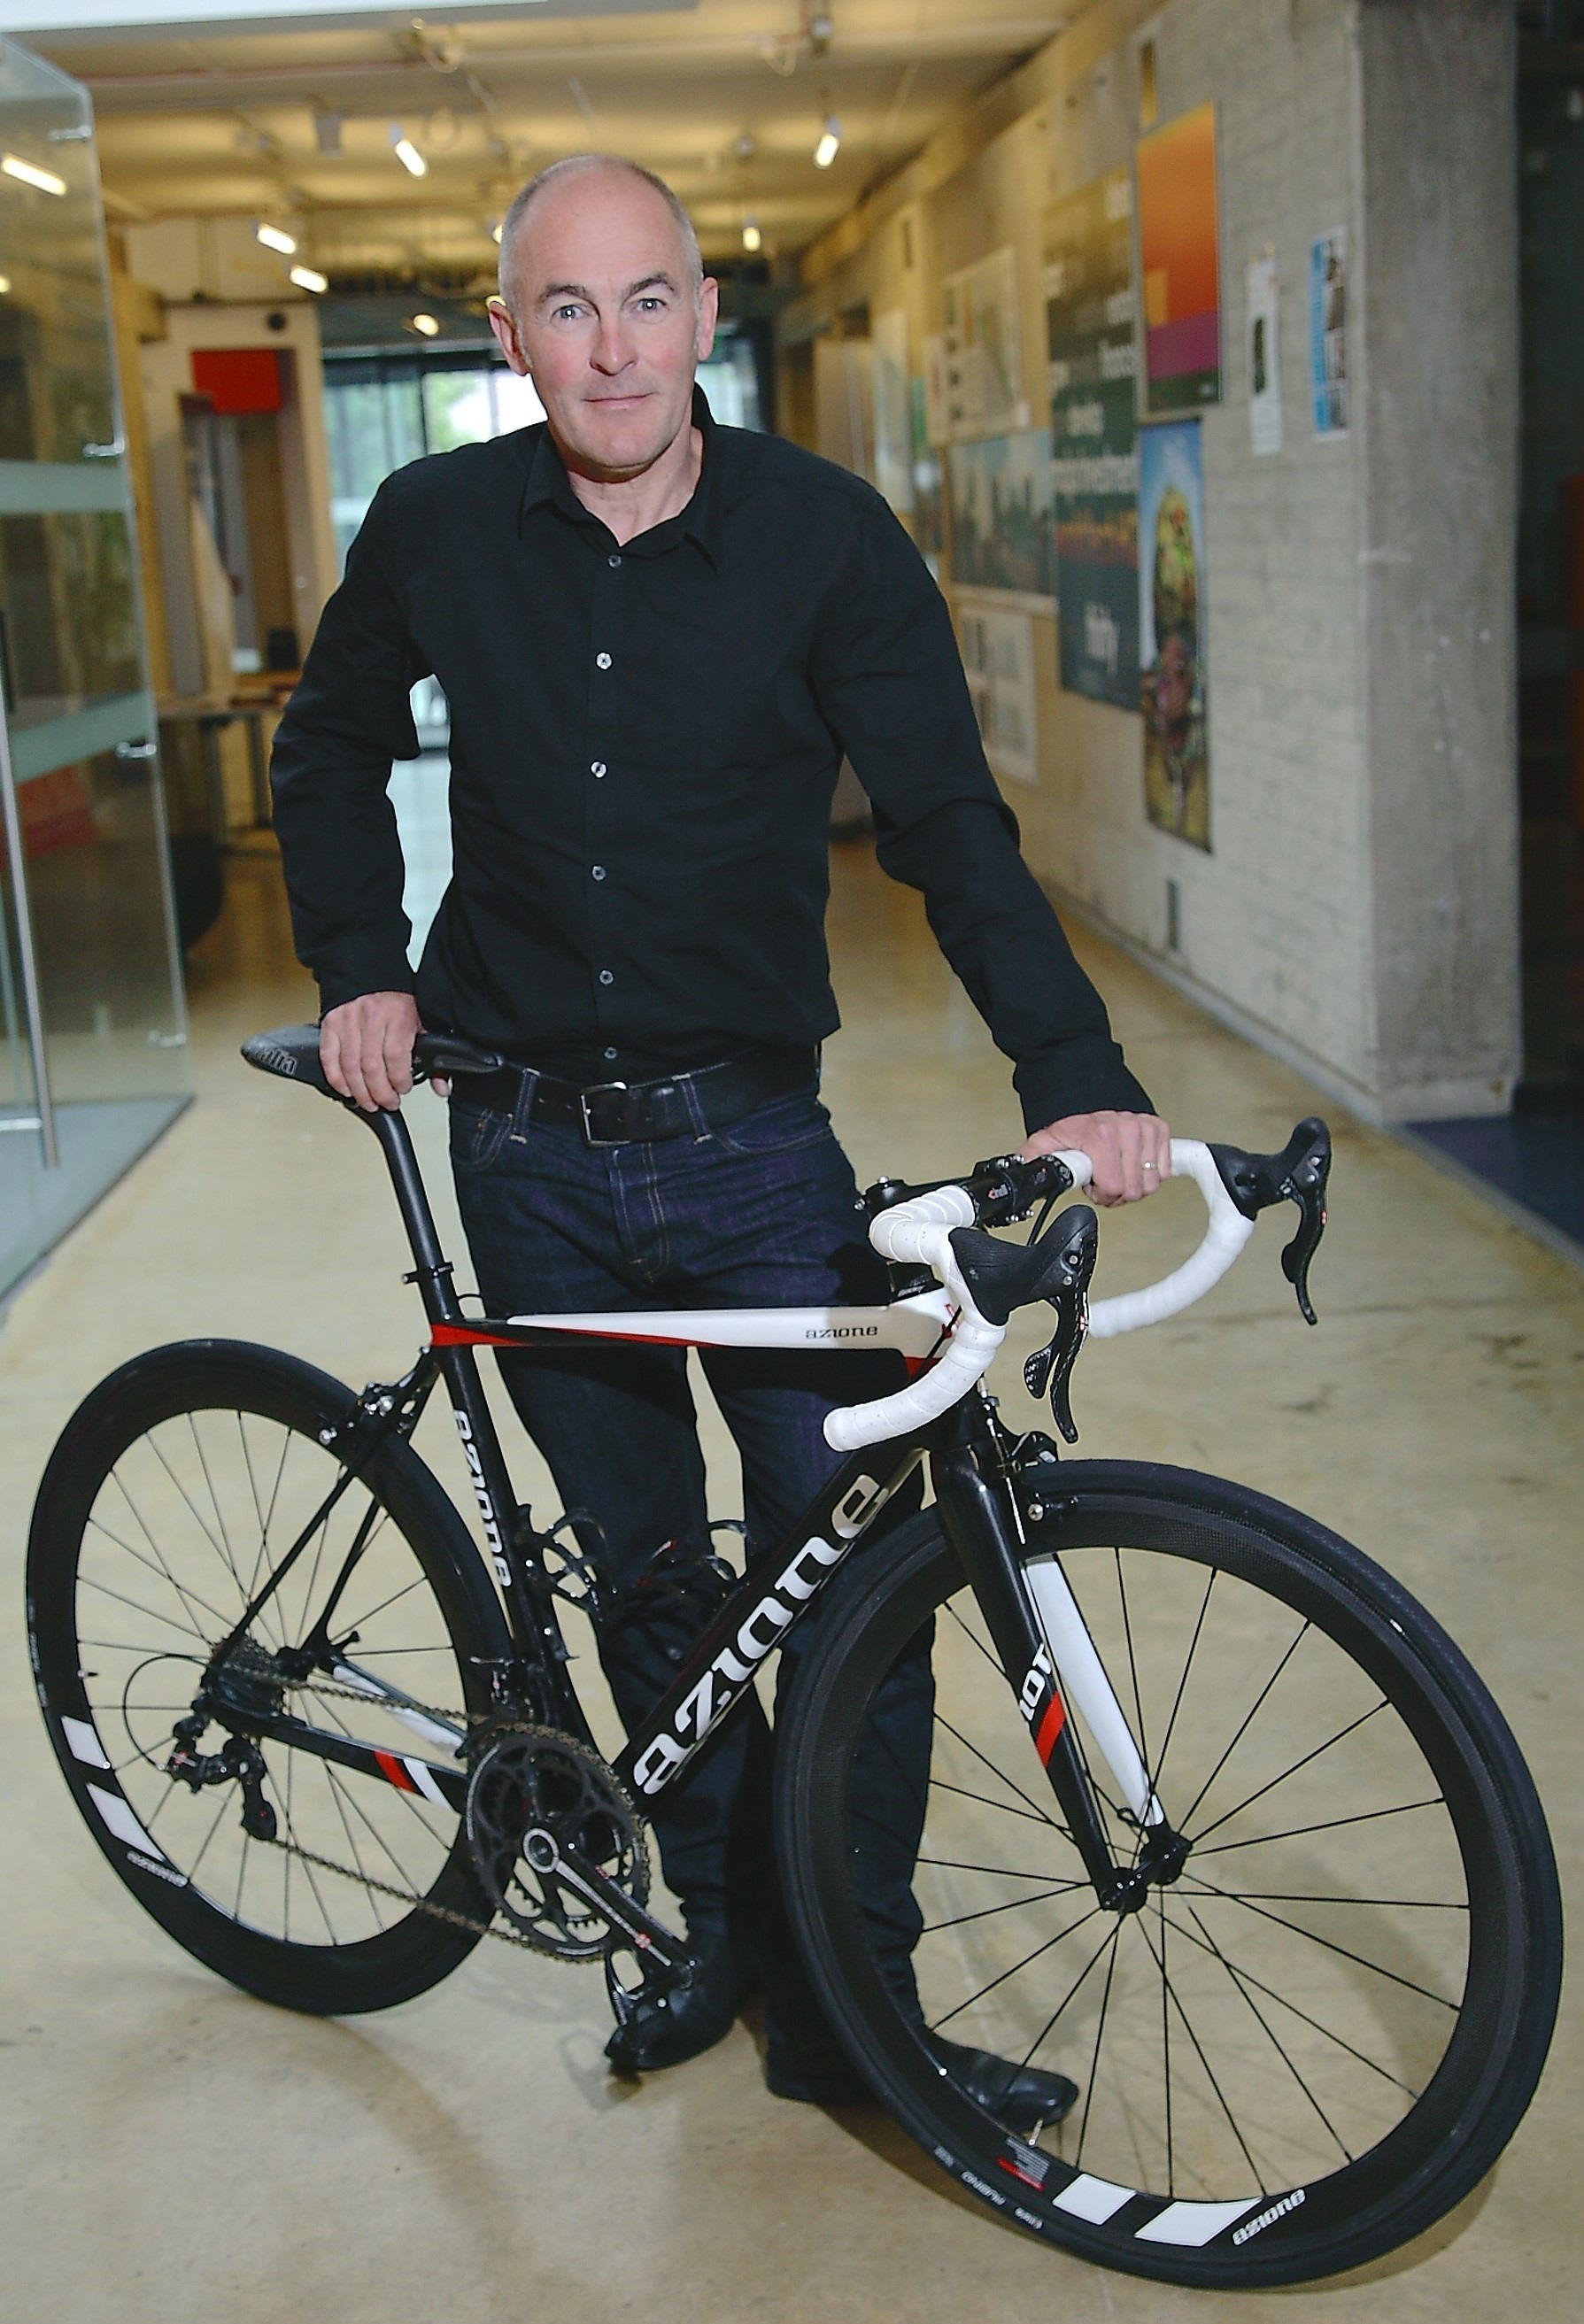 David Anderson, director of DABS Ltd and owner of Azione Custom Cycles.